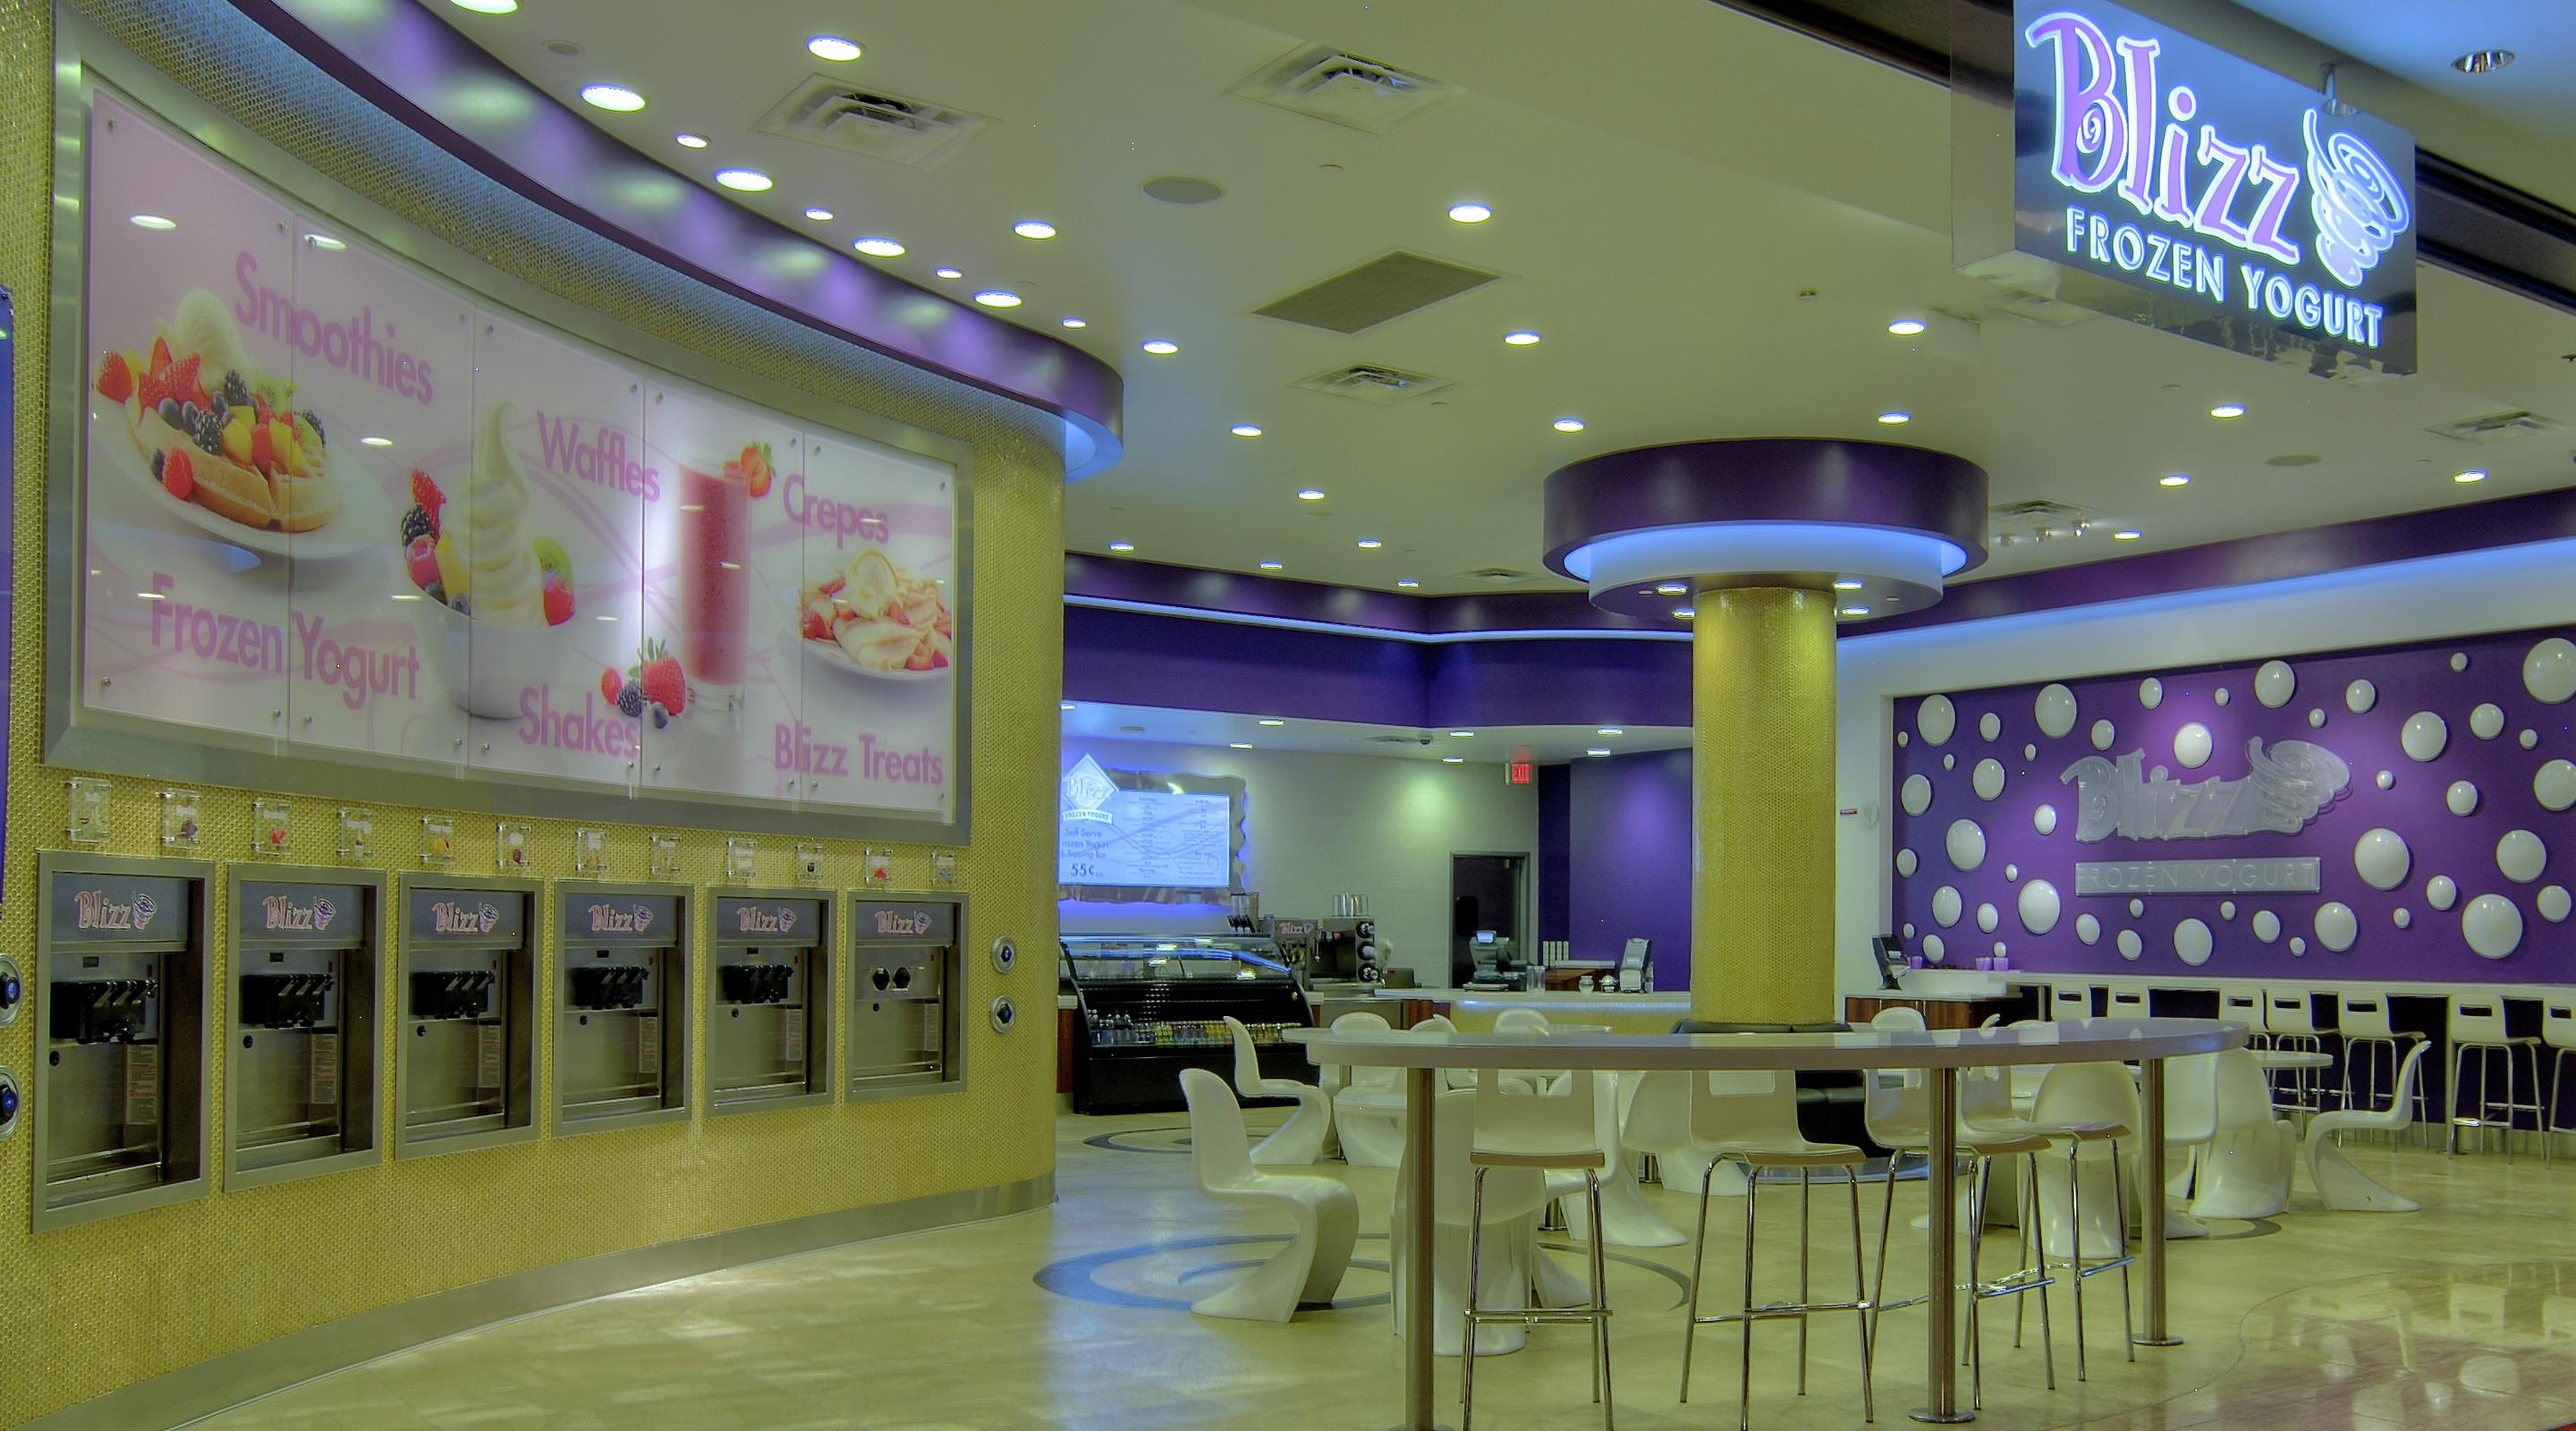 Enjoy a not-so-guilty pleasure with creamy nonfat frozen yogurt and smoothies at The Mirage